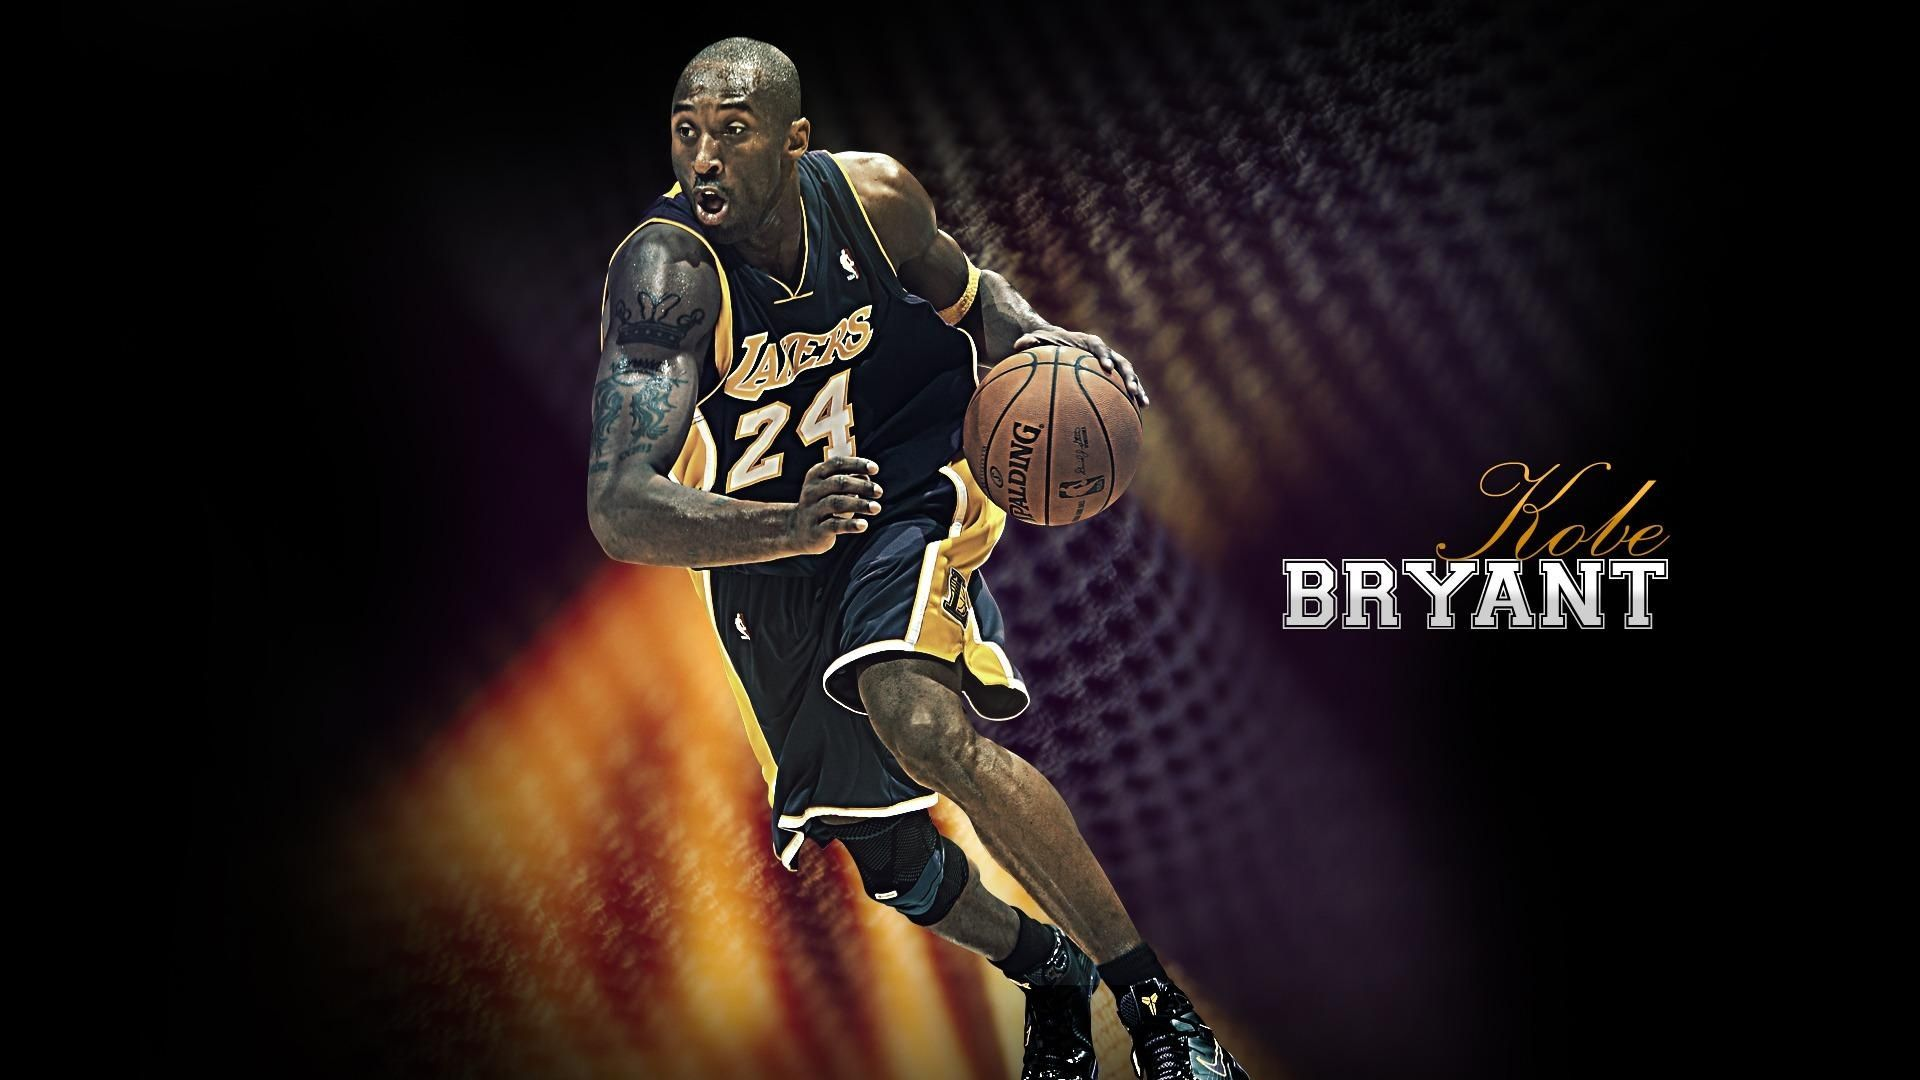 Full hd wallpaper kobe bryant tattoo basketball background desktop full hd wallpaper kobe bryant tattoo basketball background desktop voltagebd Image collections